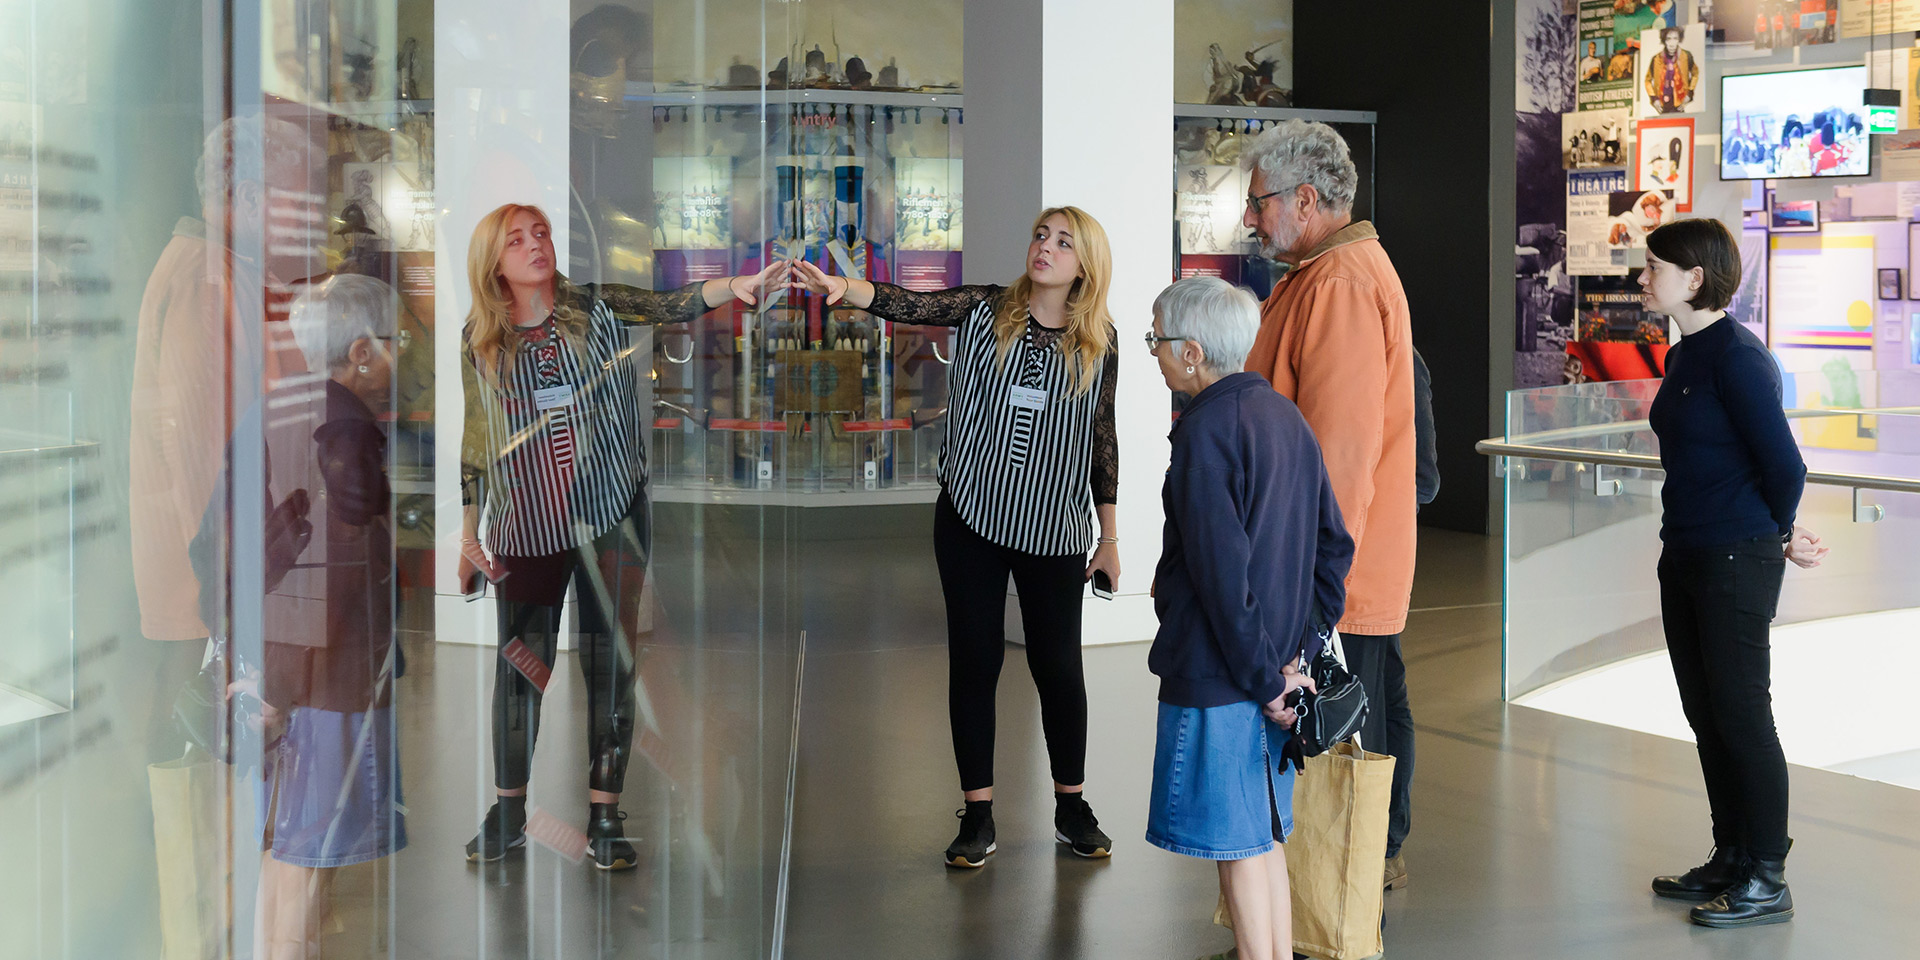 Group on tour of the museum